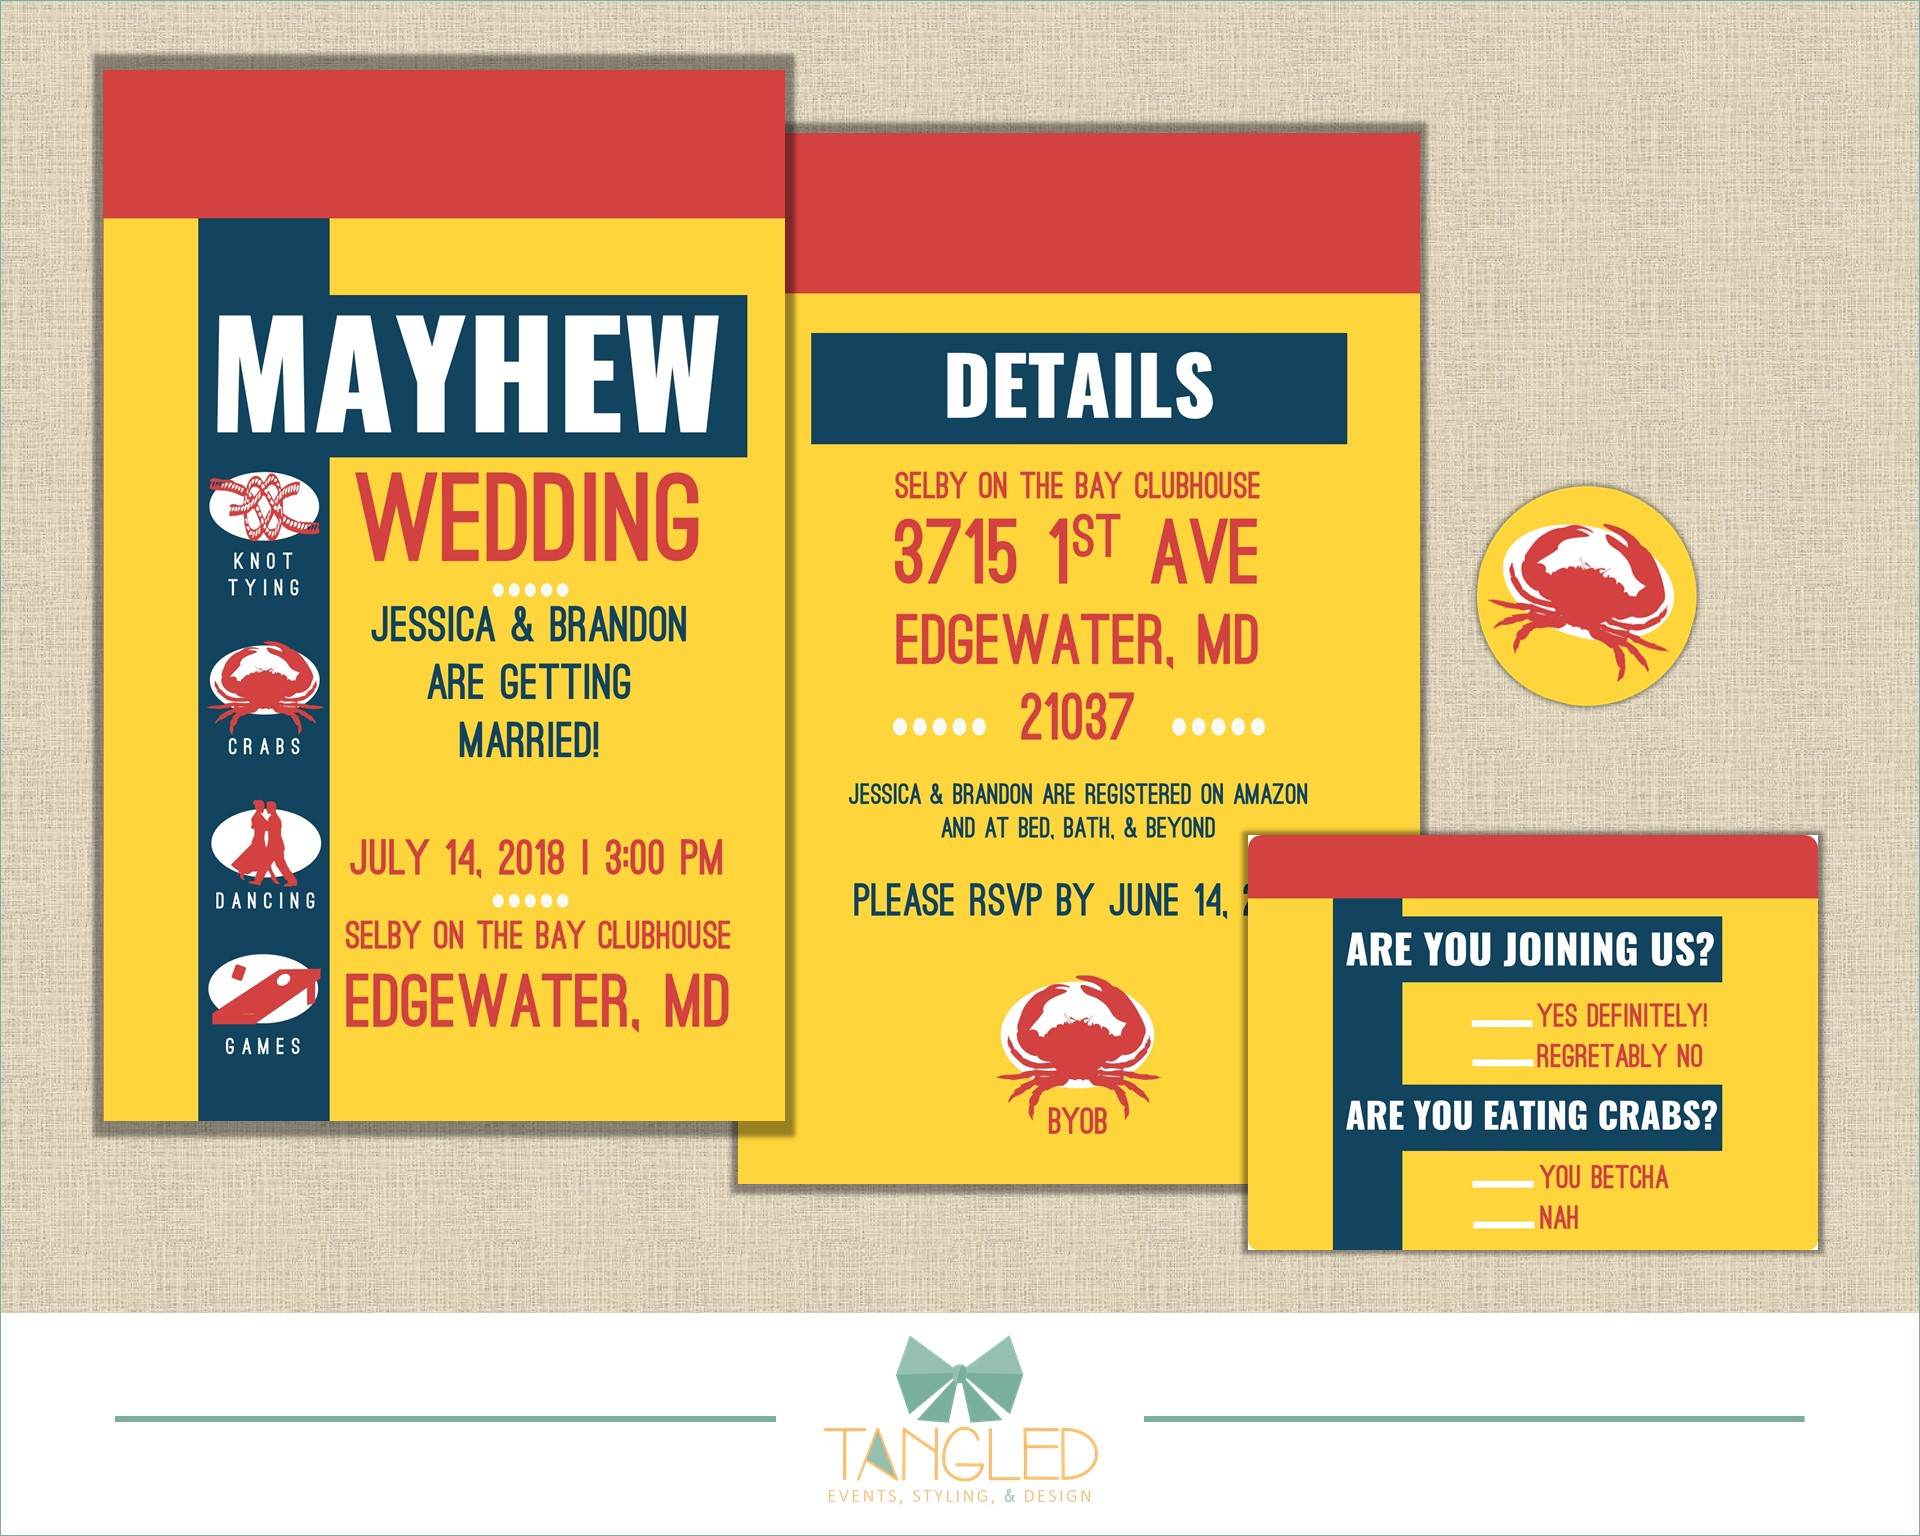 MaynewWedding_spread.jpg